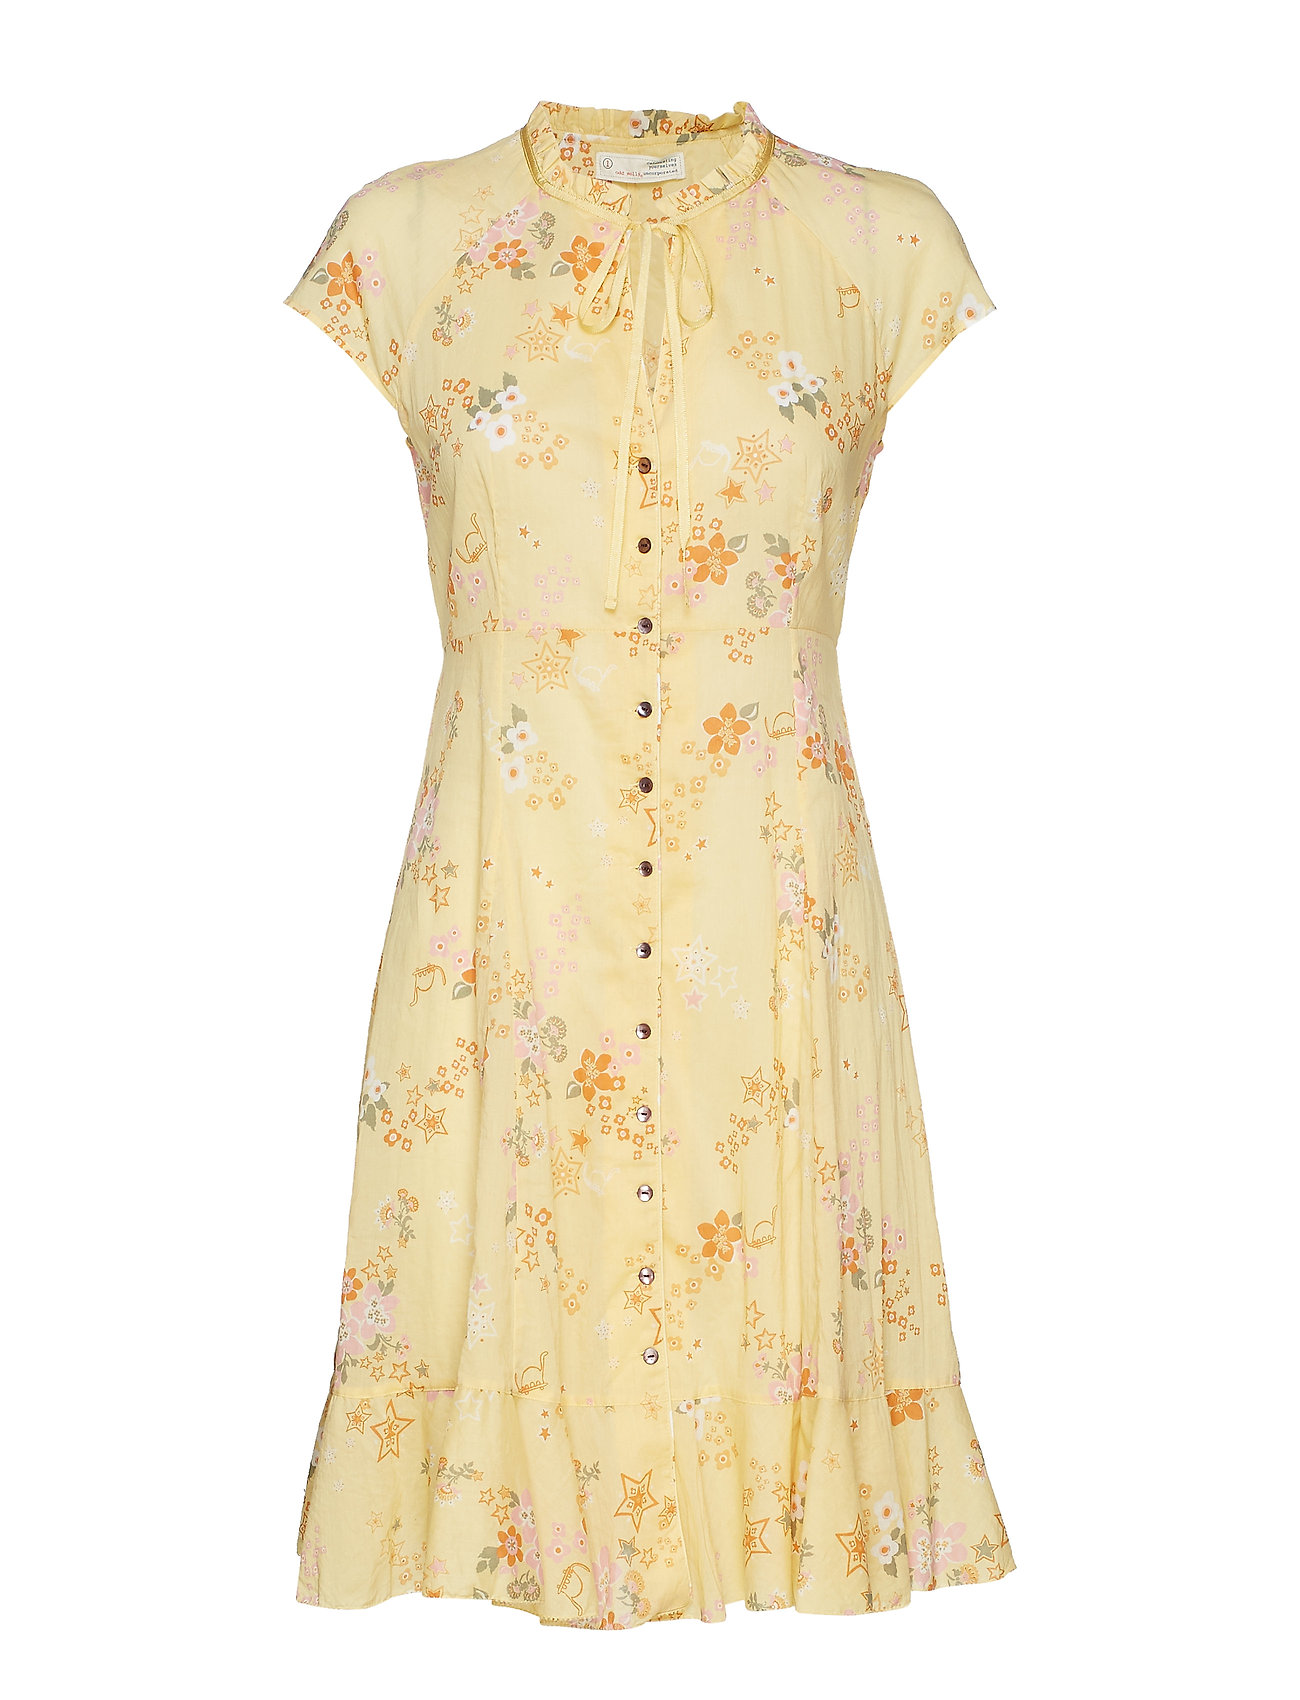 Marvelously Free Molly YellowOdd Free Dressvintage Dressvintage Free YellowOdd Molly Marvelously YellowOdd Marvelously Dressvintage strdhxQC